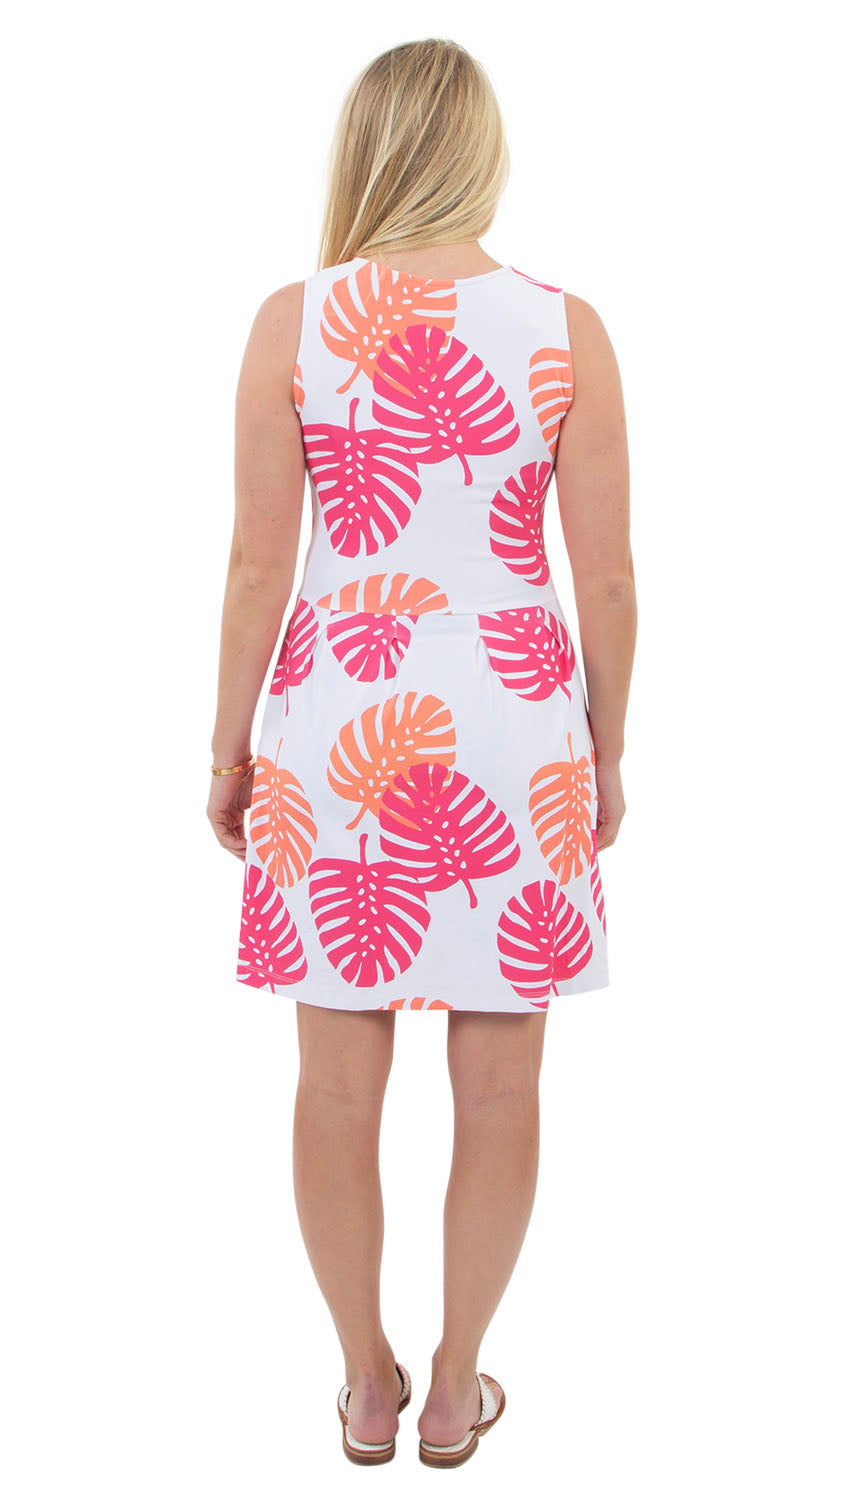 Boardwalk Dress - Hot Pink/Salmon Dancing Palms- SAMPLE FINAL SALE